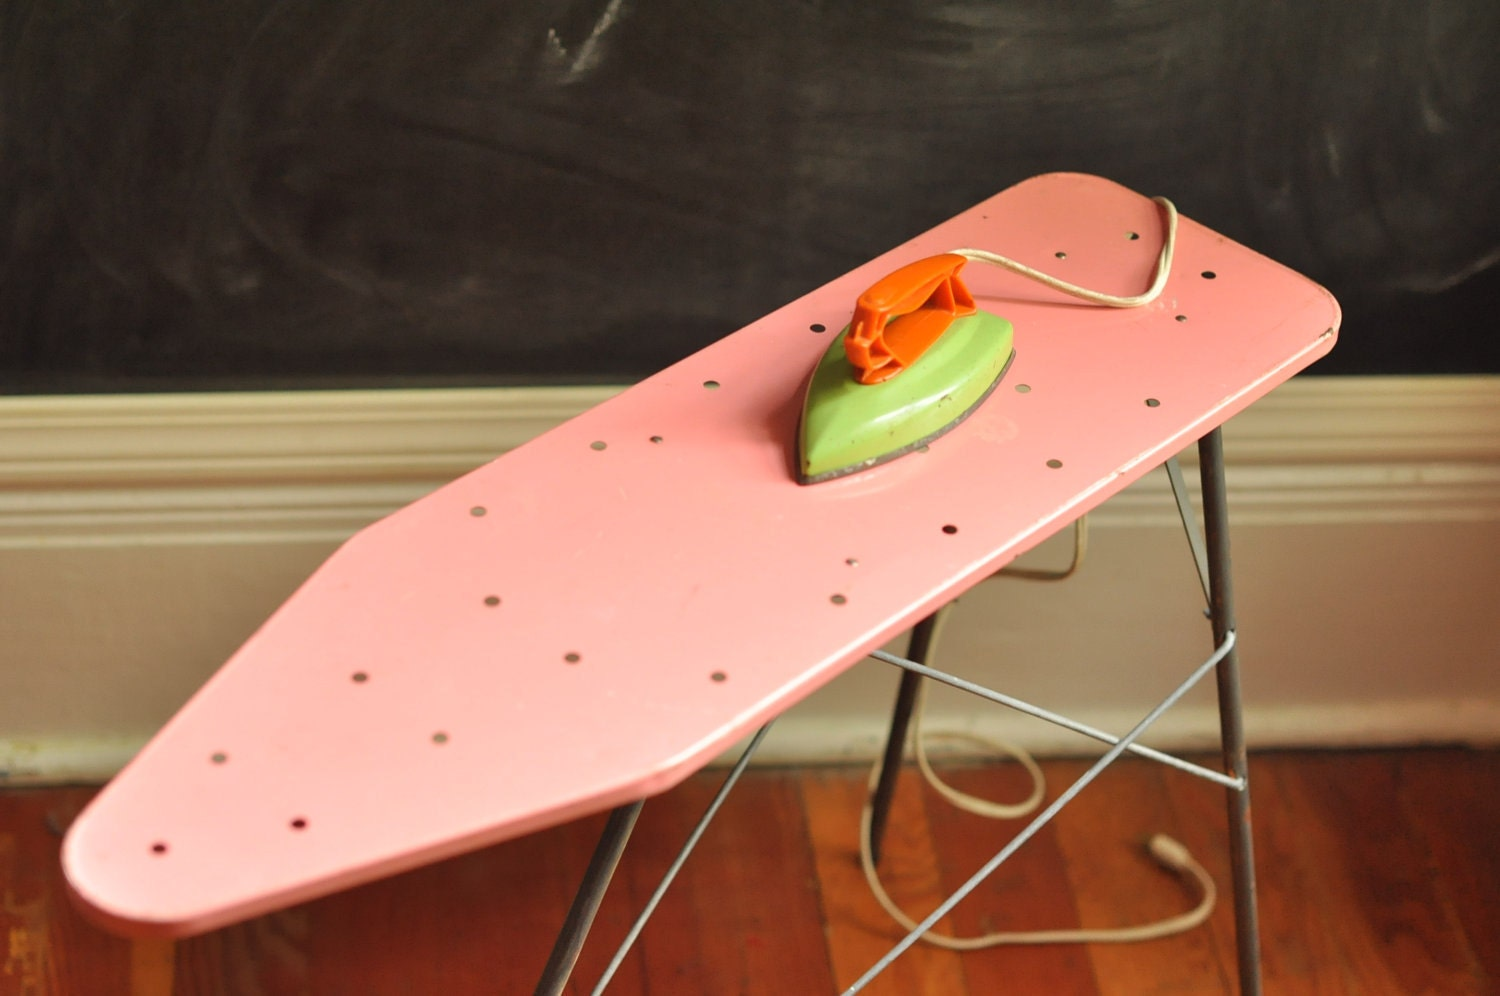 Electric Ironing Board ~ Vintage collectible toy pink metal ironing board and electric